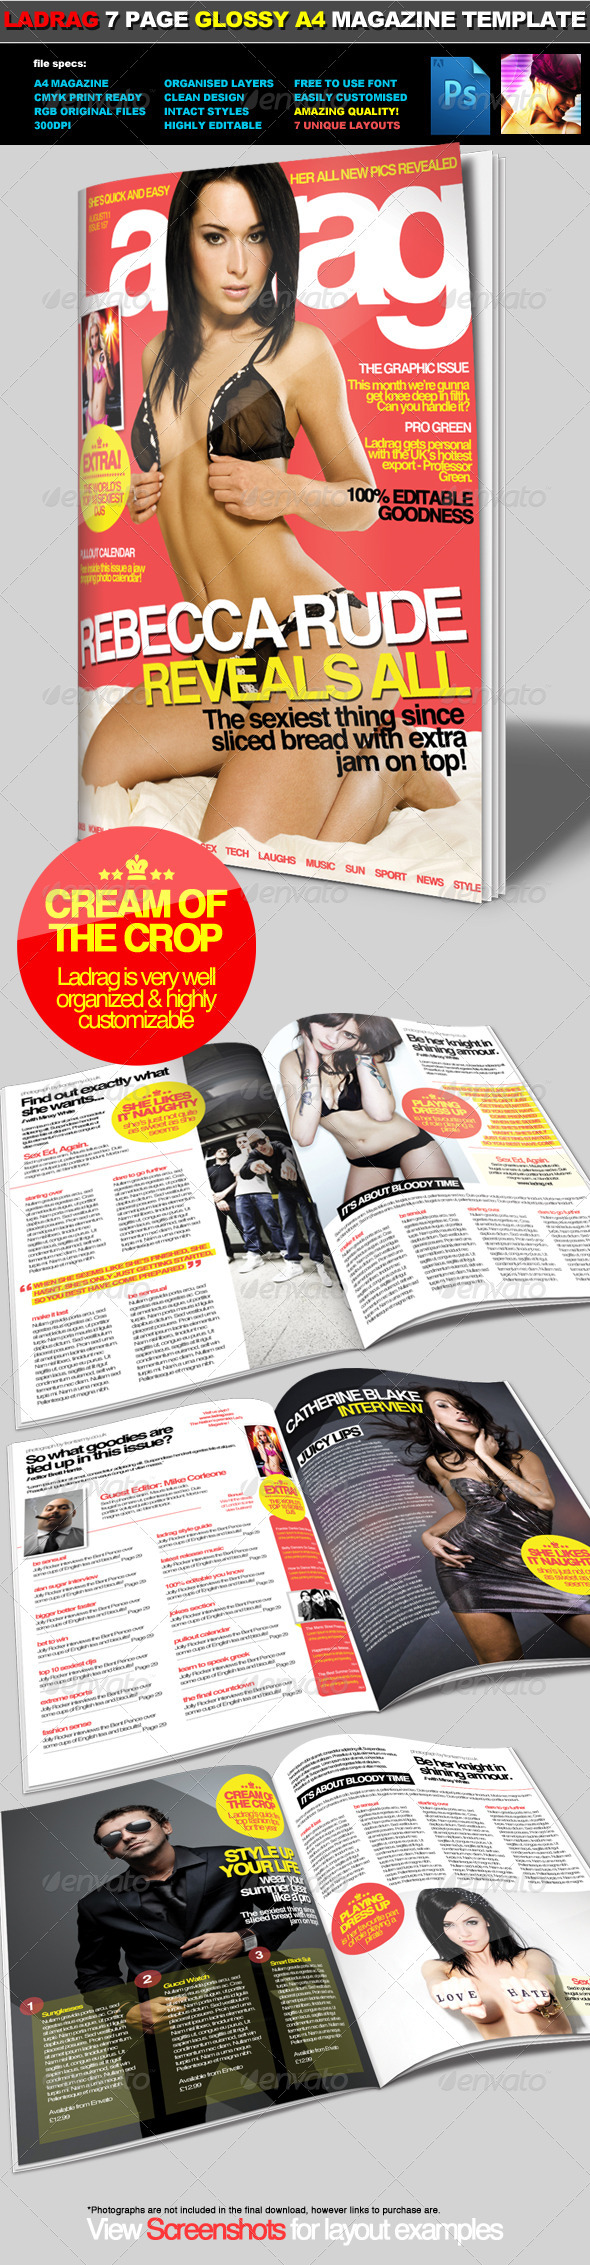 LadRag - Multi-Use Glossy A4 Magazine Template